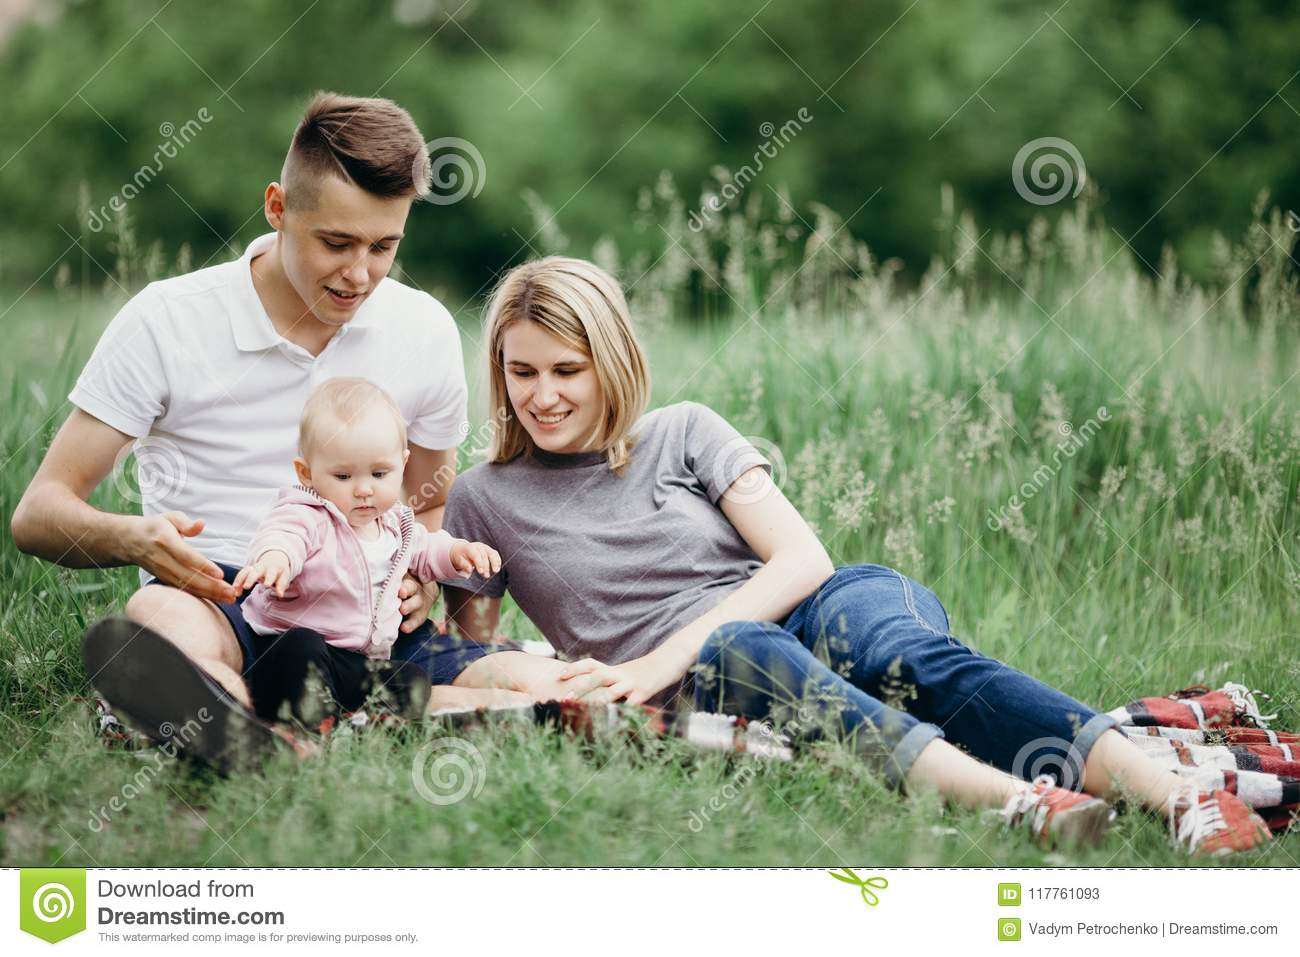 708e3efcad9 Happy Young Family Resting In Nature Together Stock Image - Image of ...